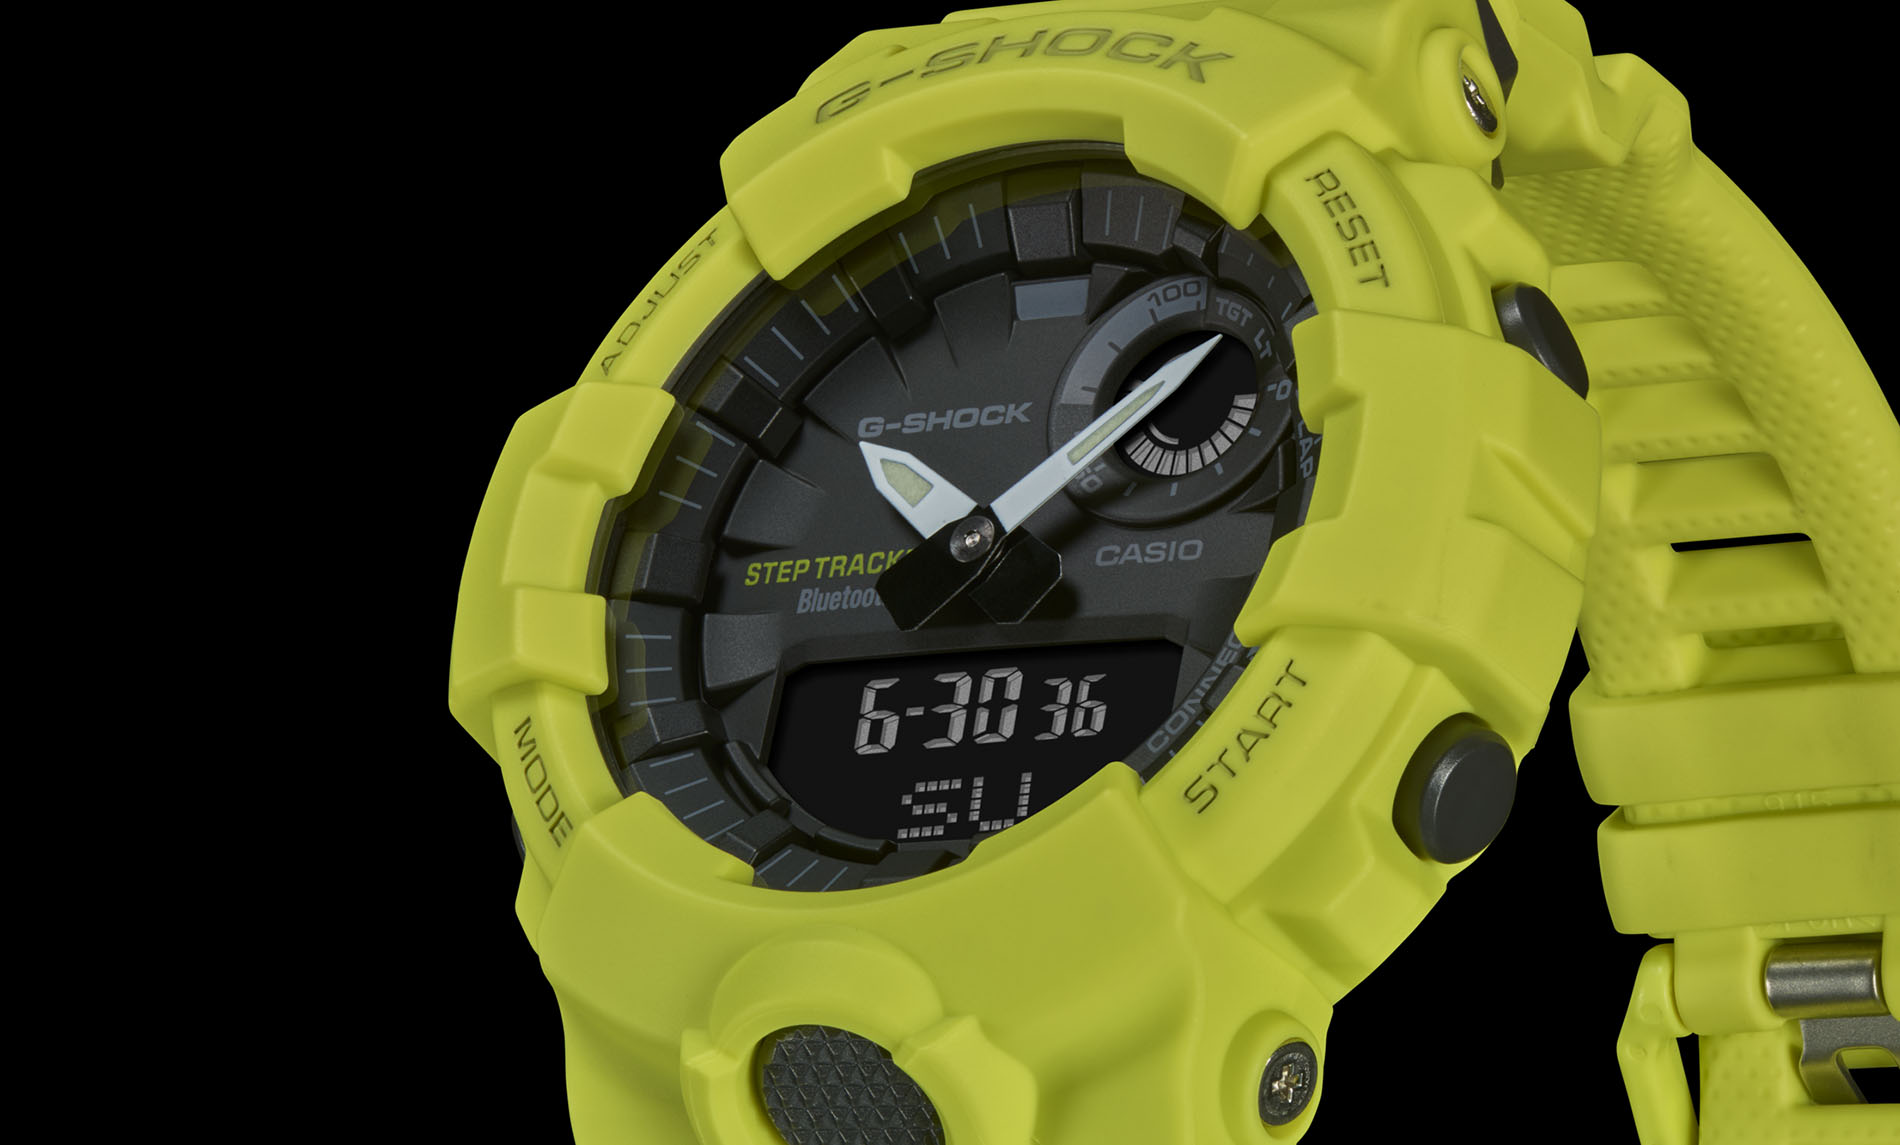 gba800 analog digital watch g-shock